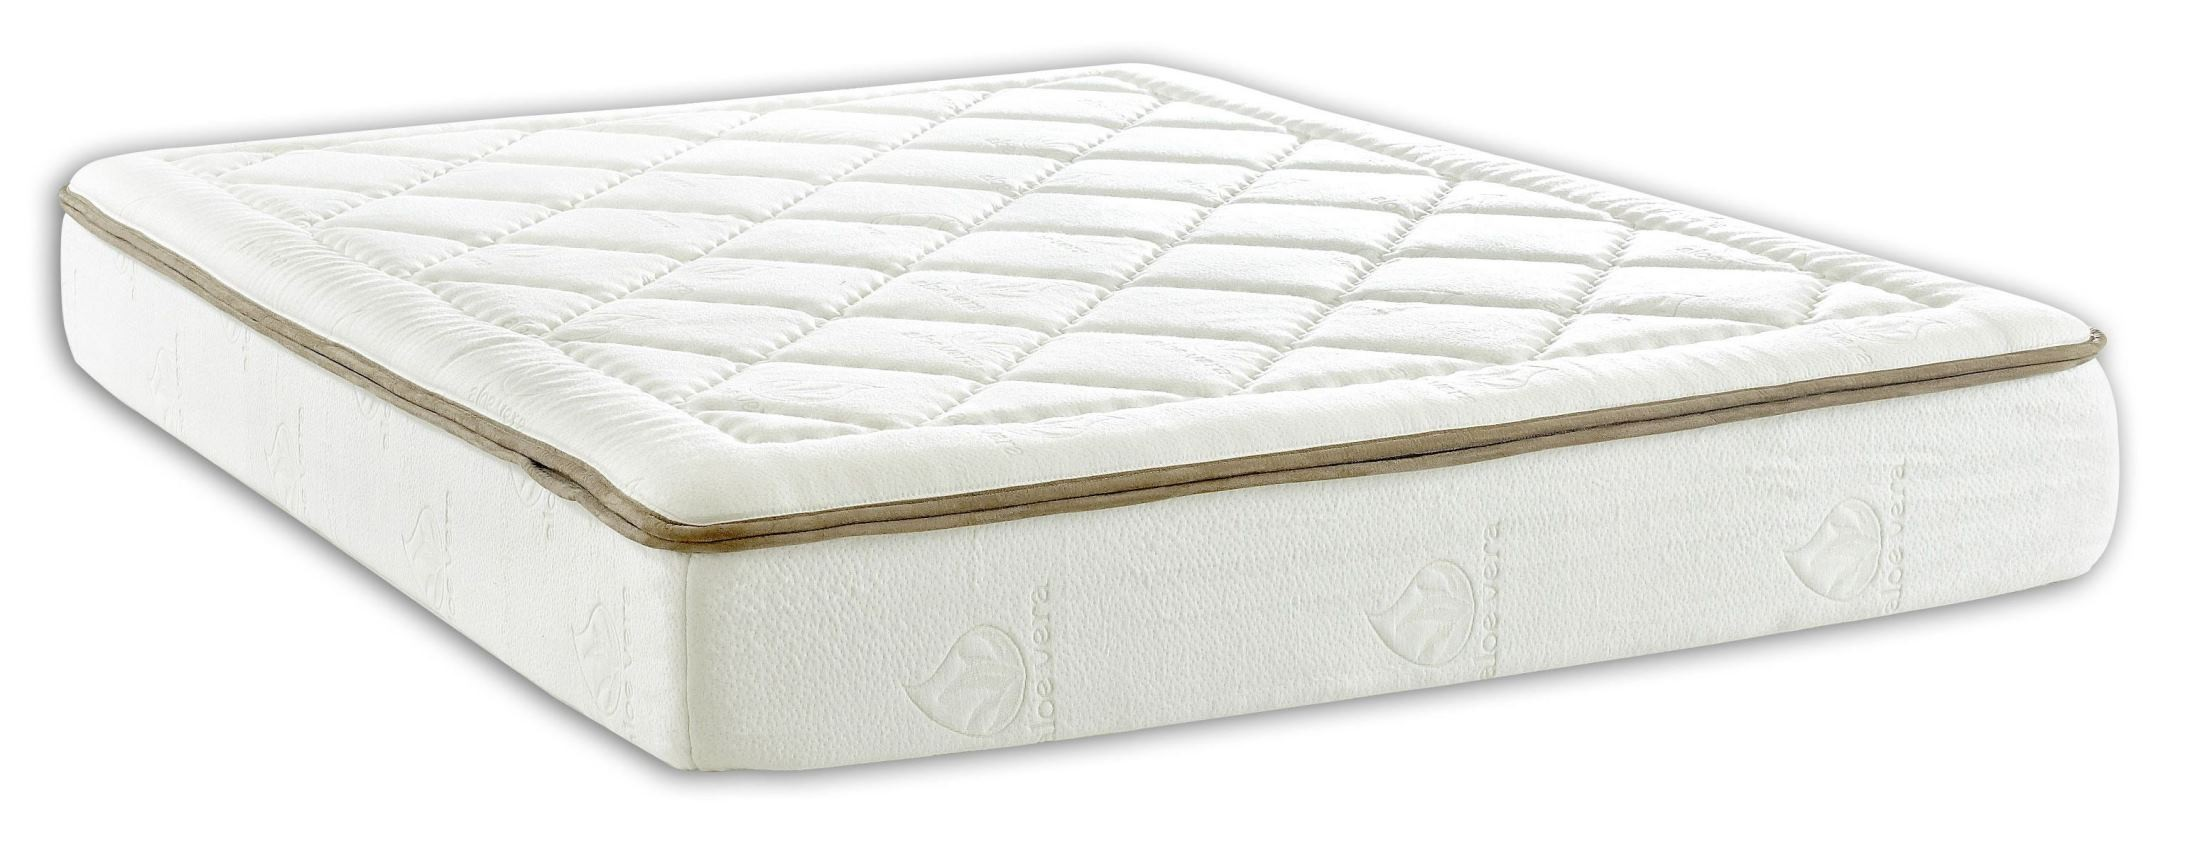 Dream Weaver 10 Memory Foam Twin Mattress From Klaussner